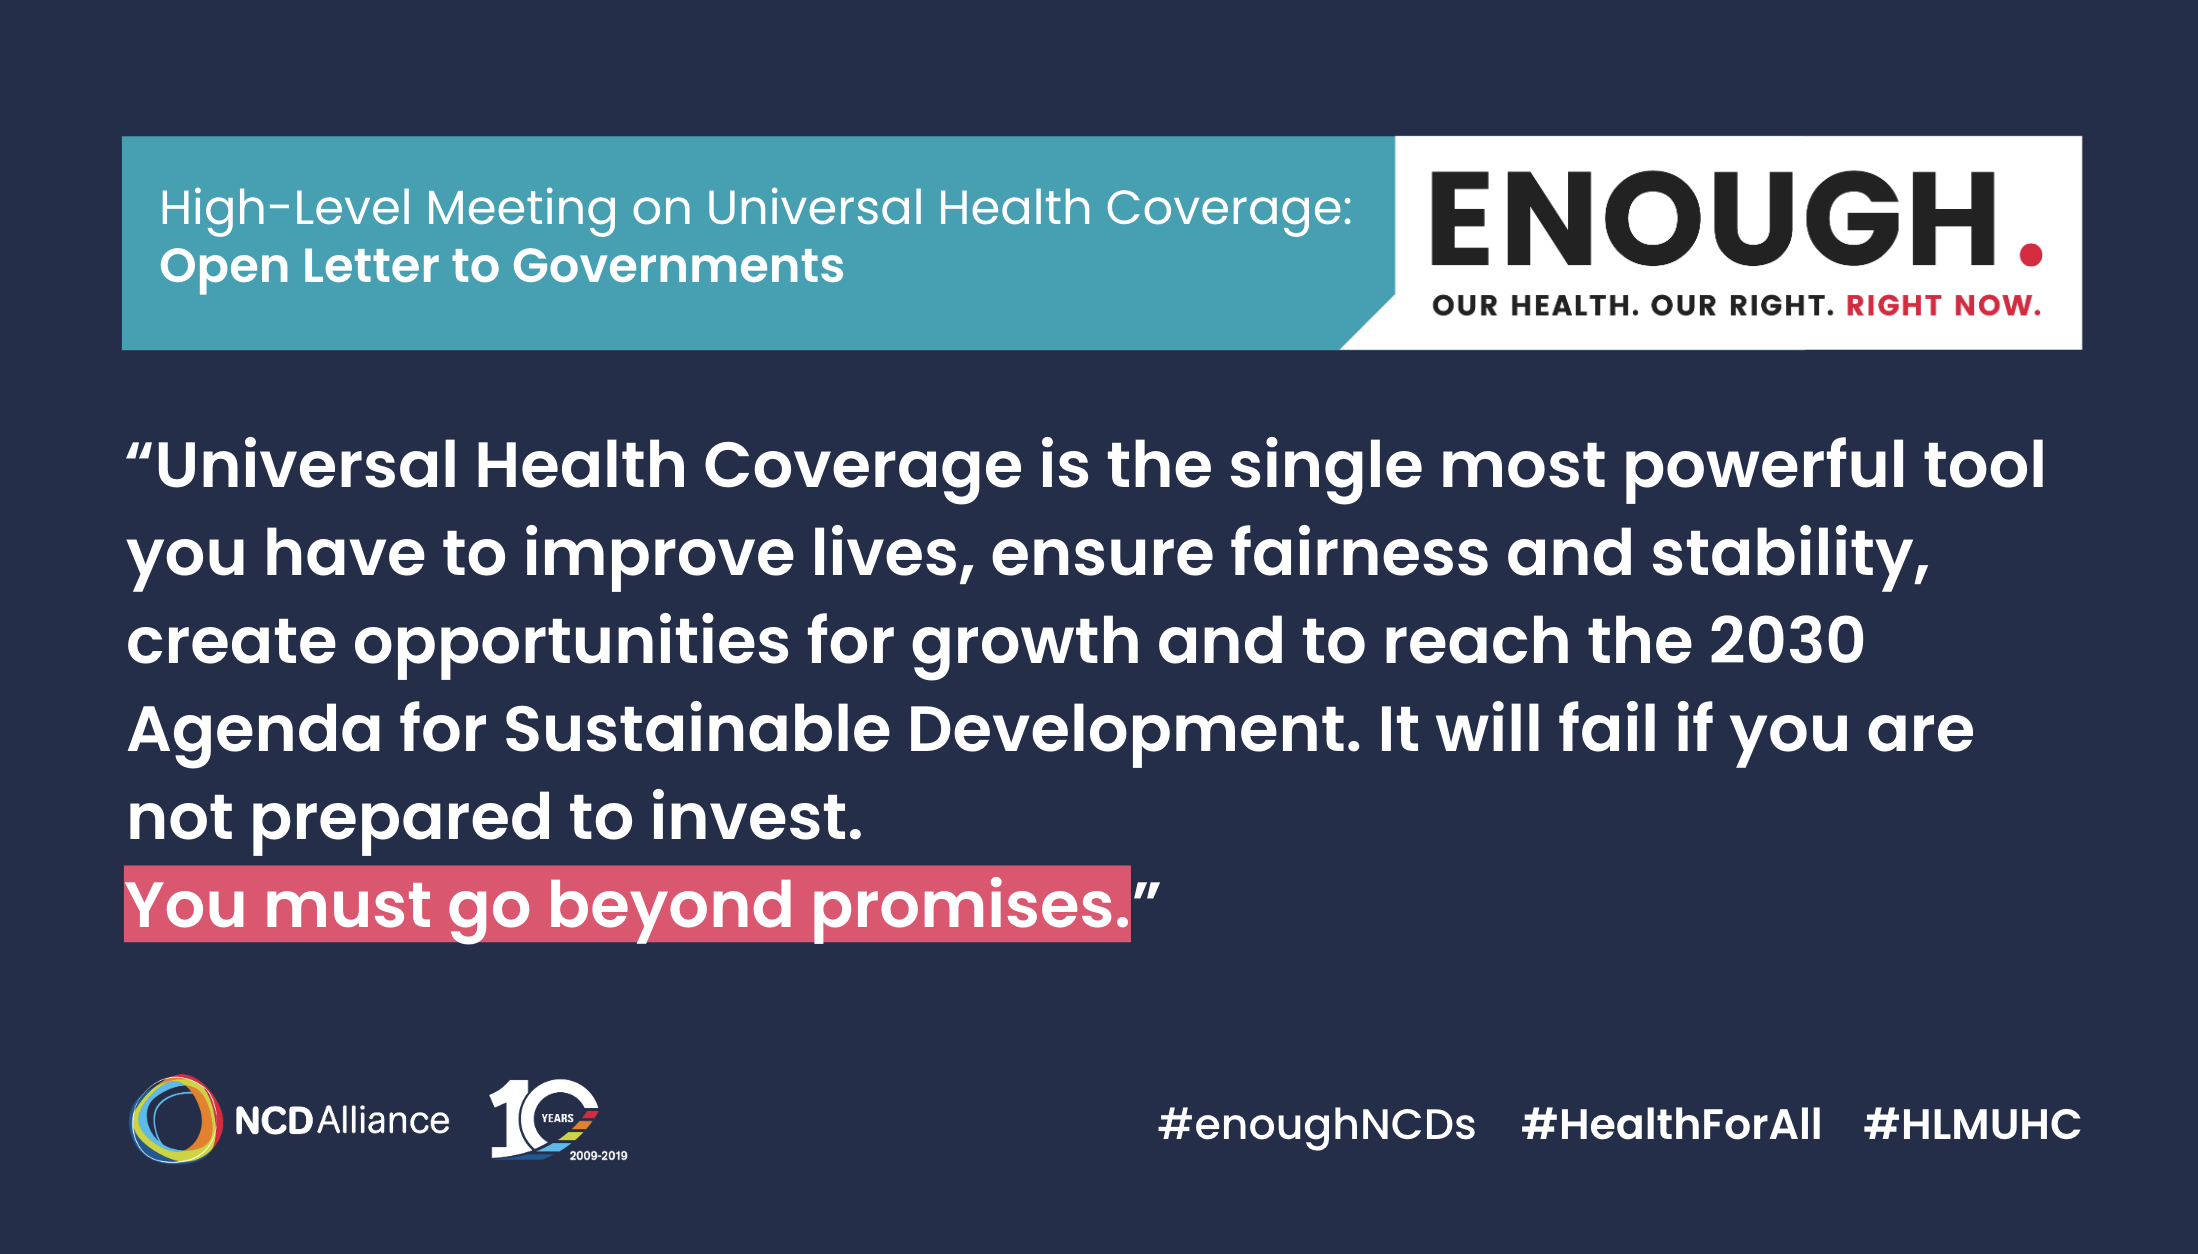 UHC – From Promises To Progress On Health For All